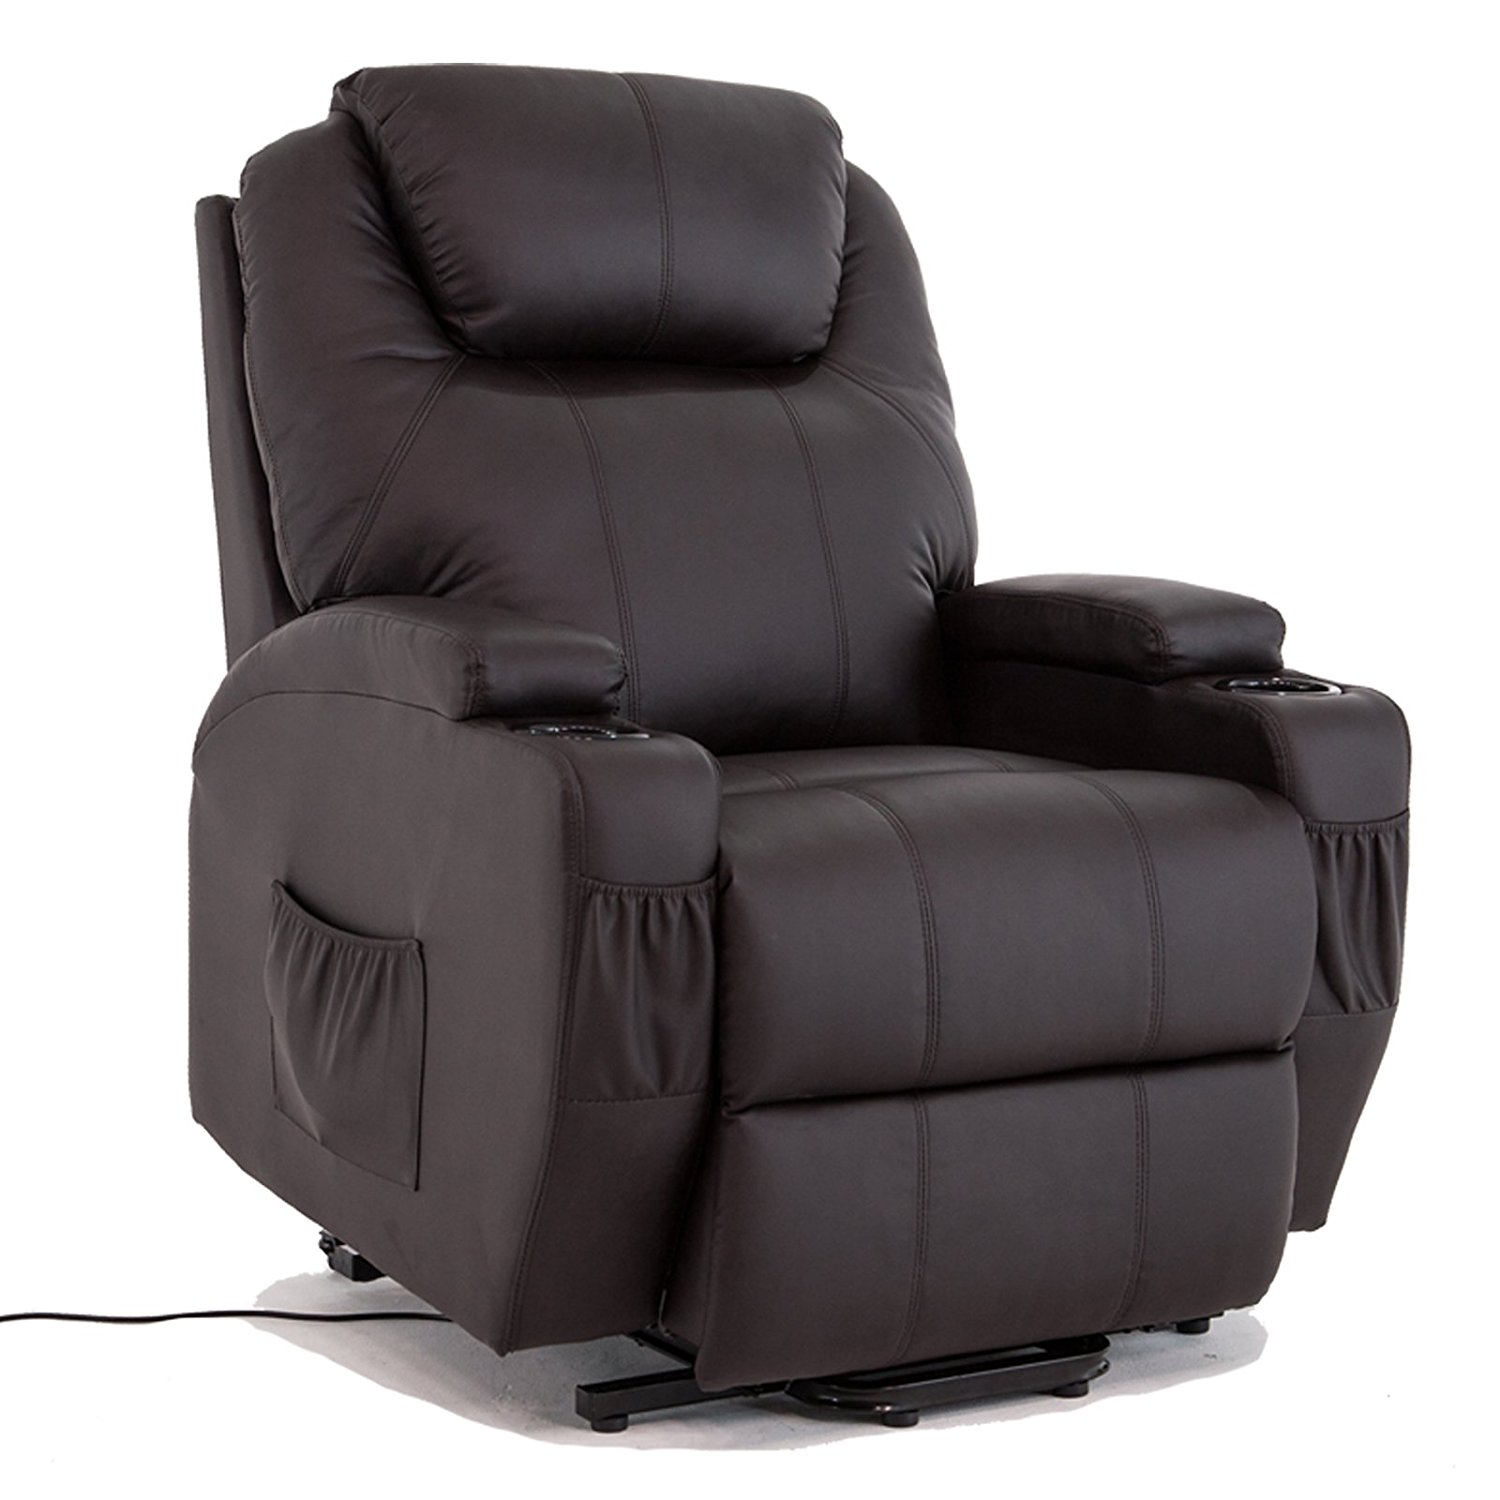 uenjoy power lift chair recliner armchair real leather